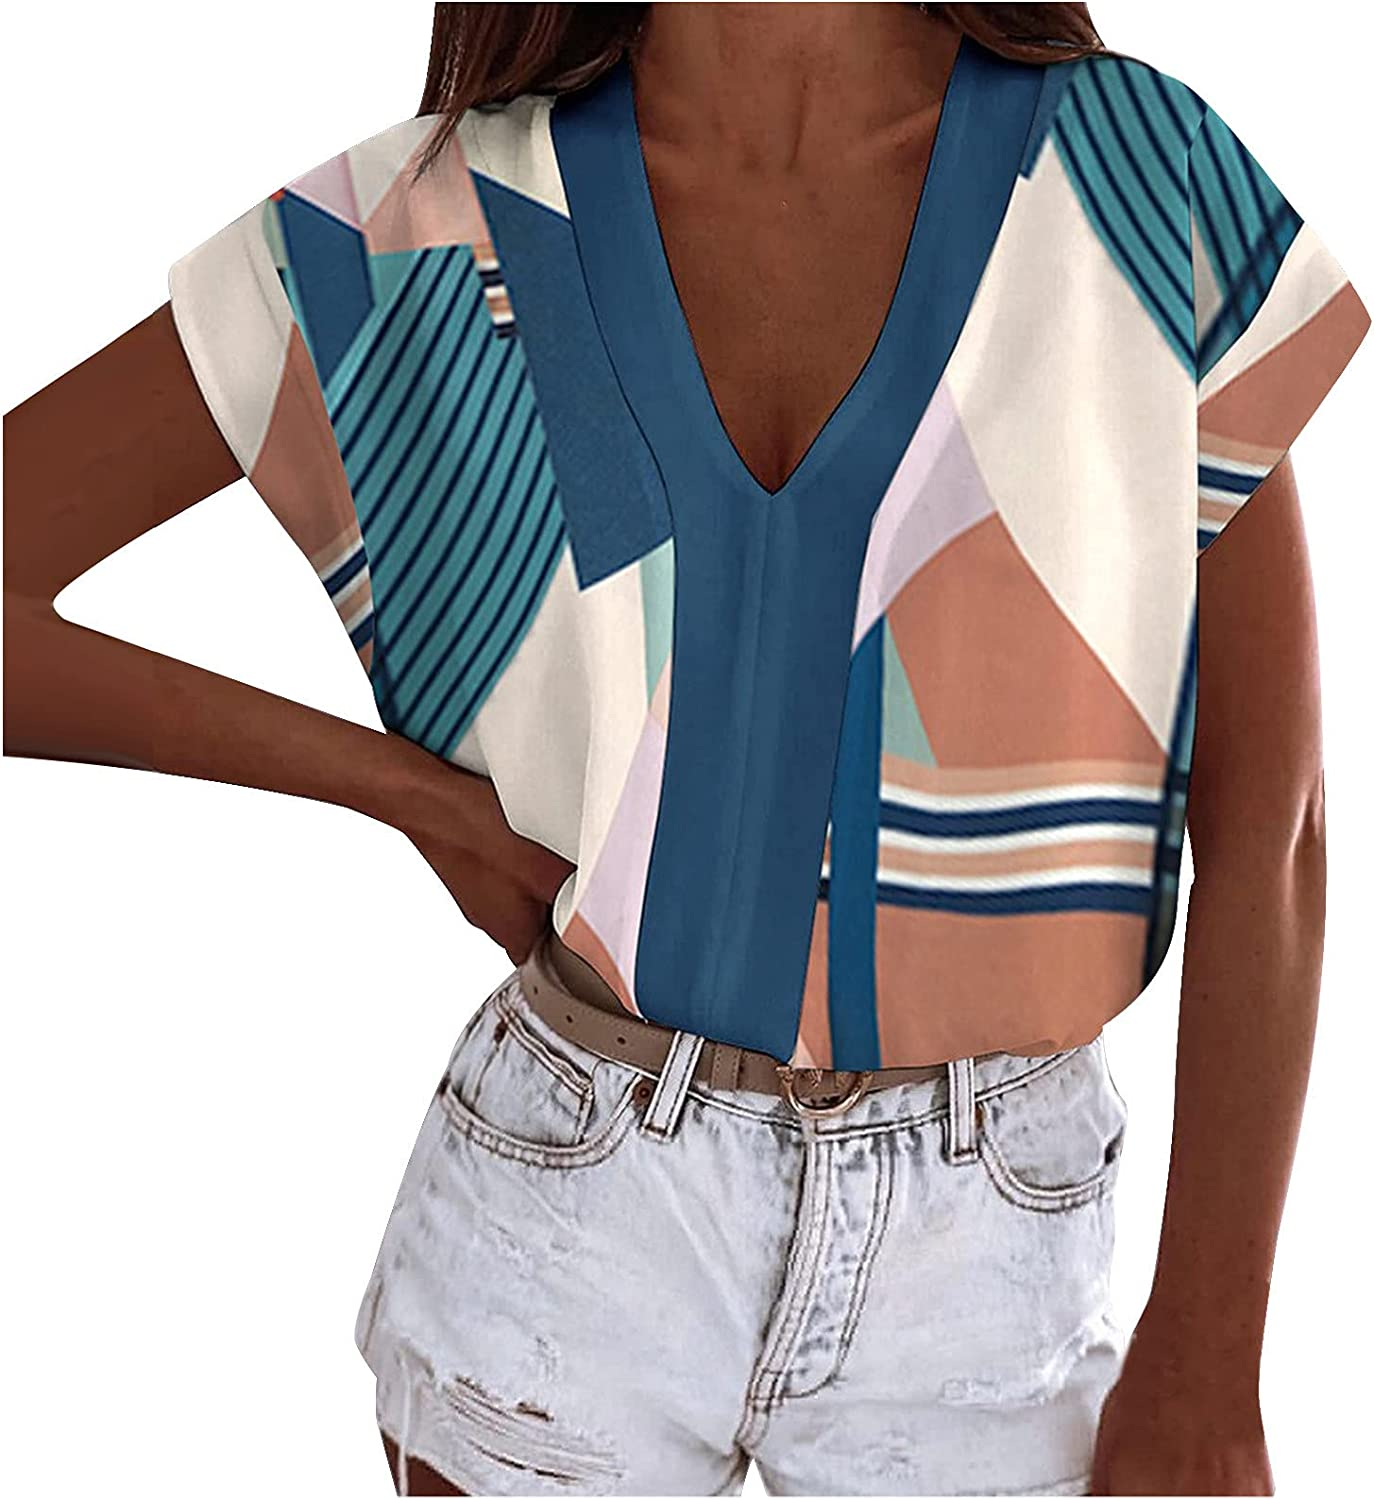 Afelkas Tshirts for Women Summer Color Block Stitching Printed Blouse V-Neck Short-Sleeve Tunic Lightweight Loose Tees